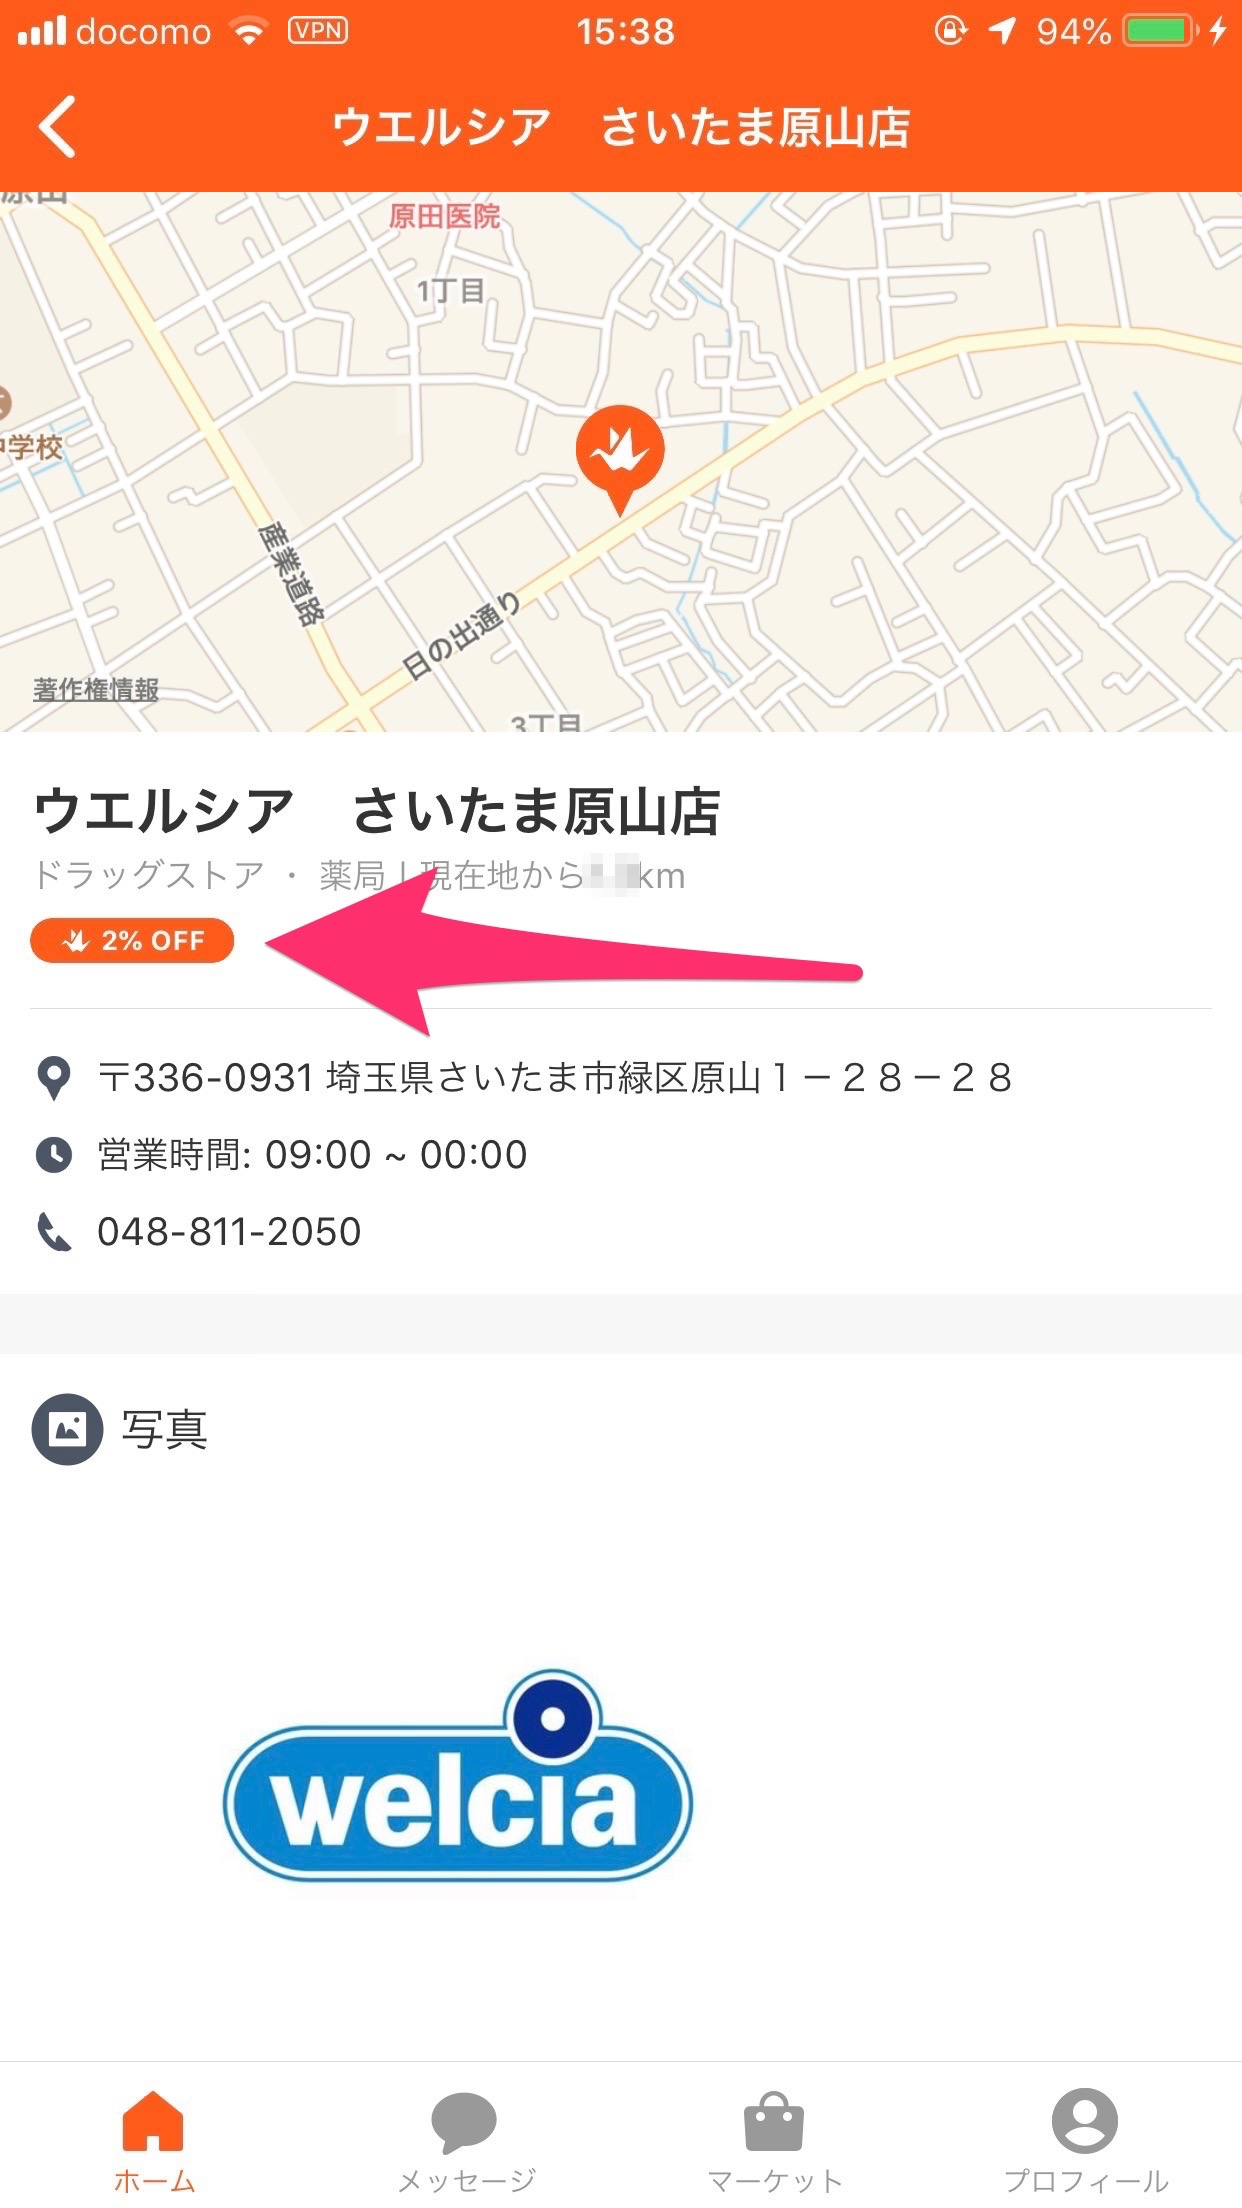 「Origami Pay」で実質5%還元 3